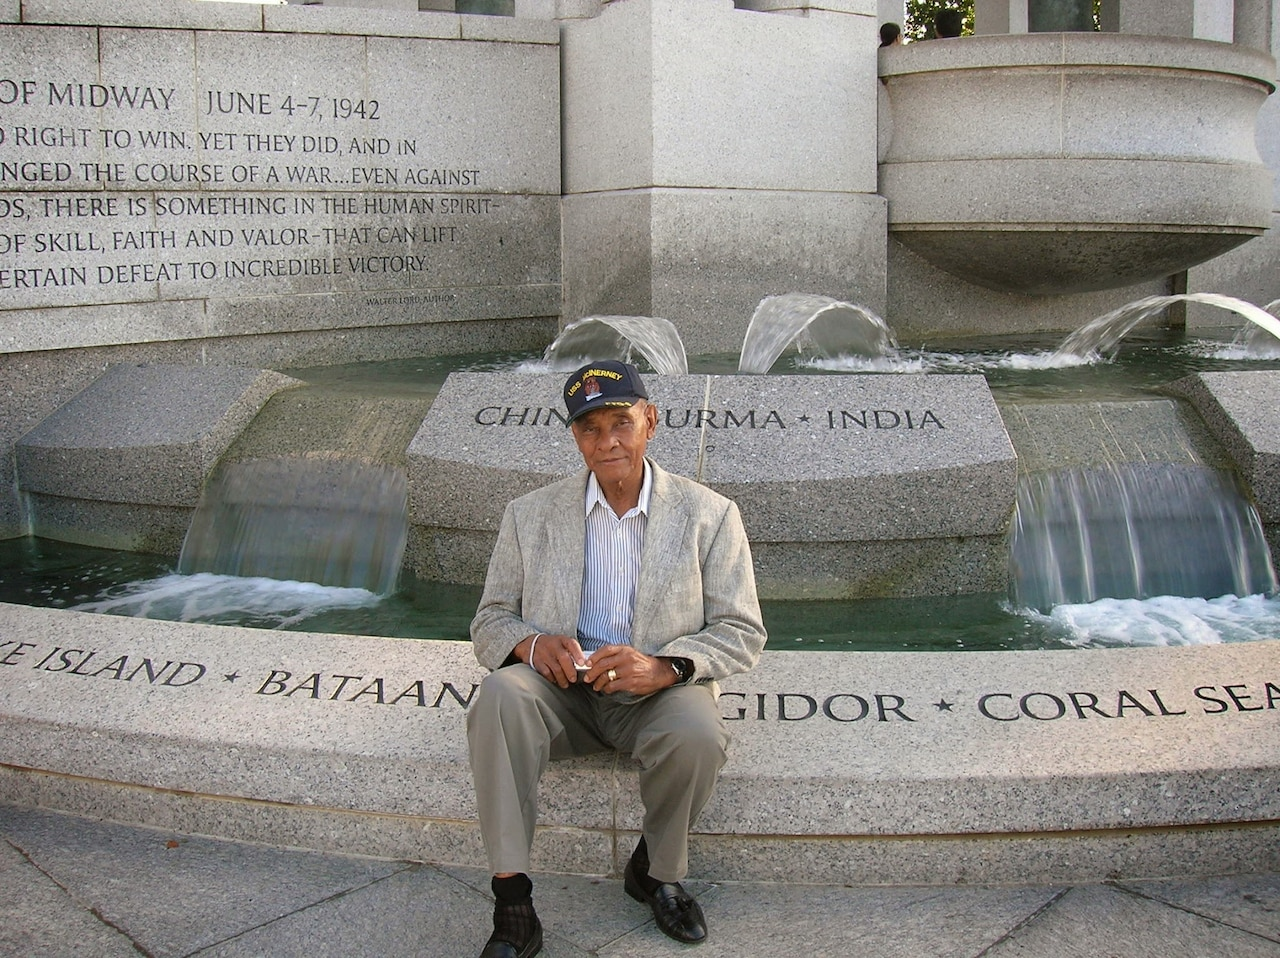 A man wearing a suit and baseball cap sits in front of a water fountain monument.